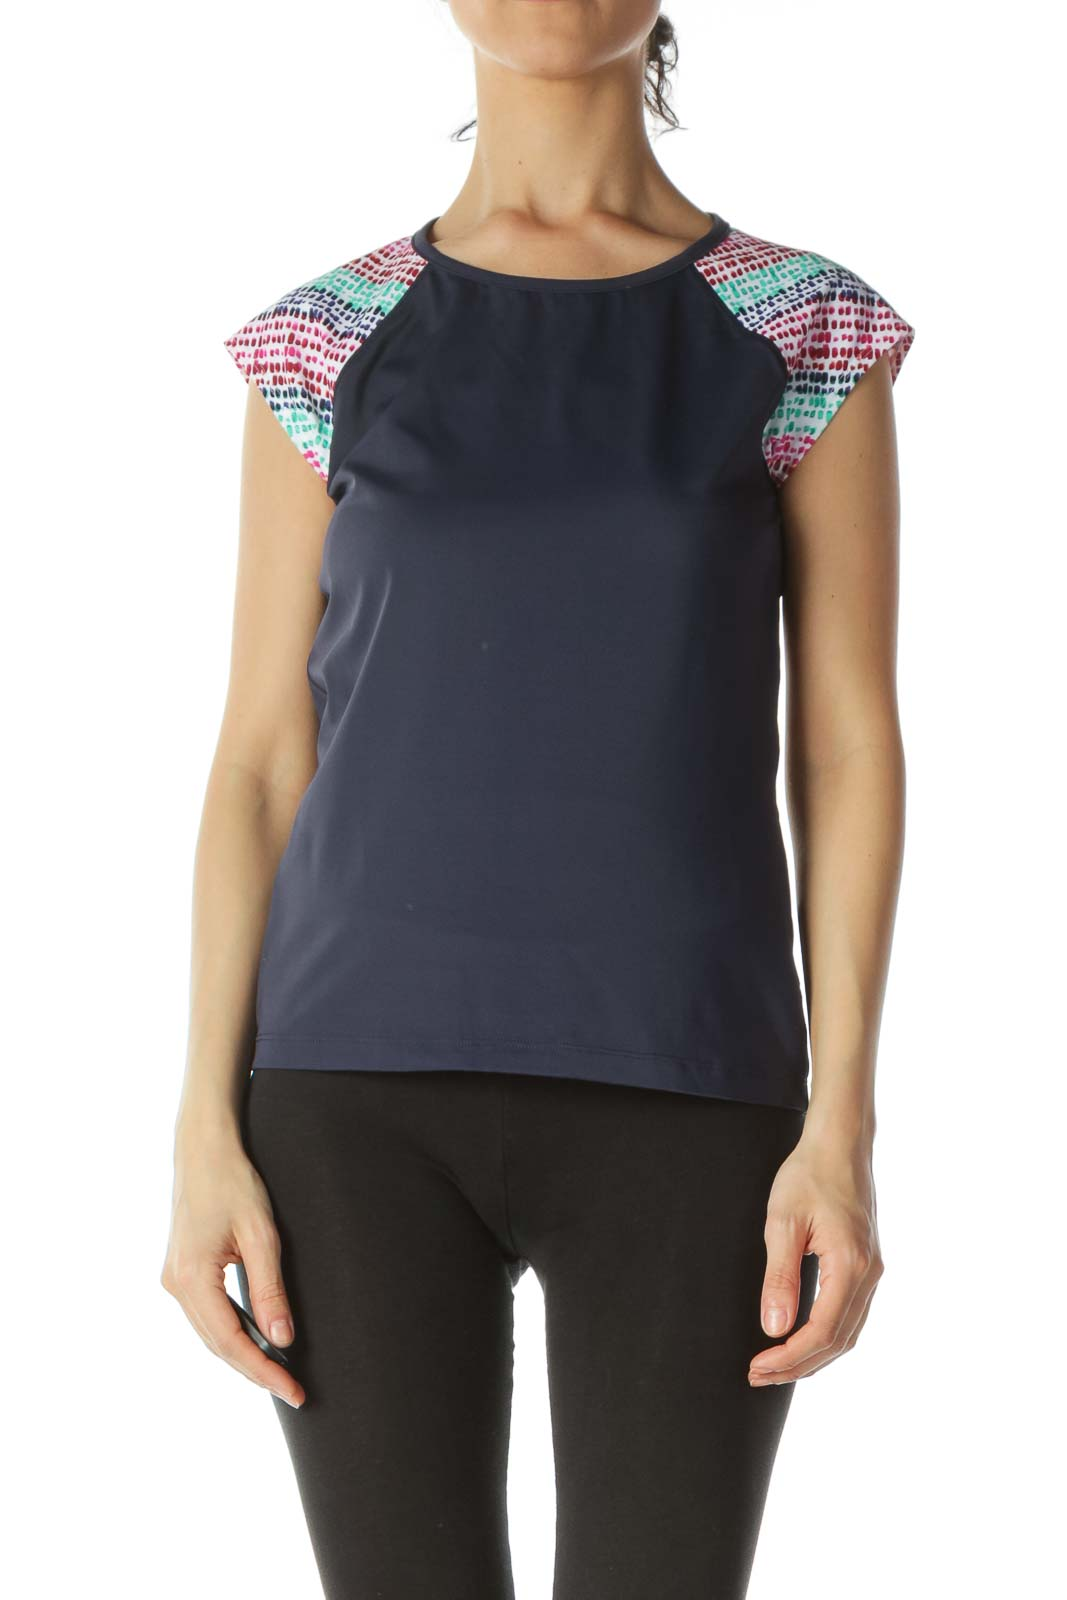 Blue Body Multicolored-Print-Sleeves Activewear Top